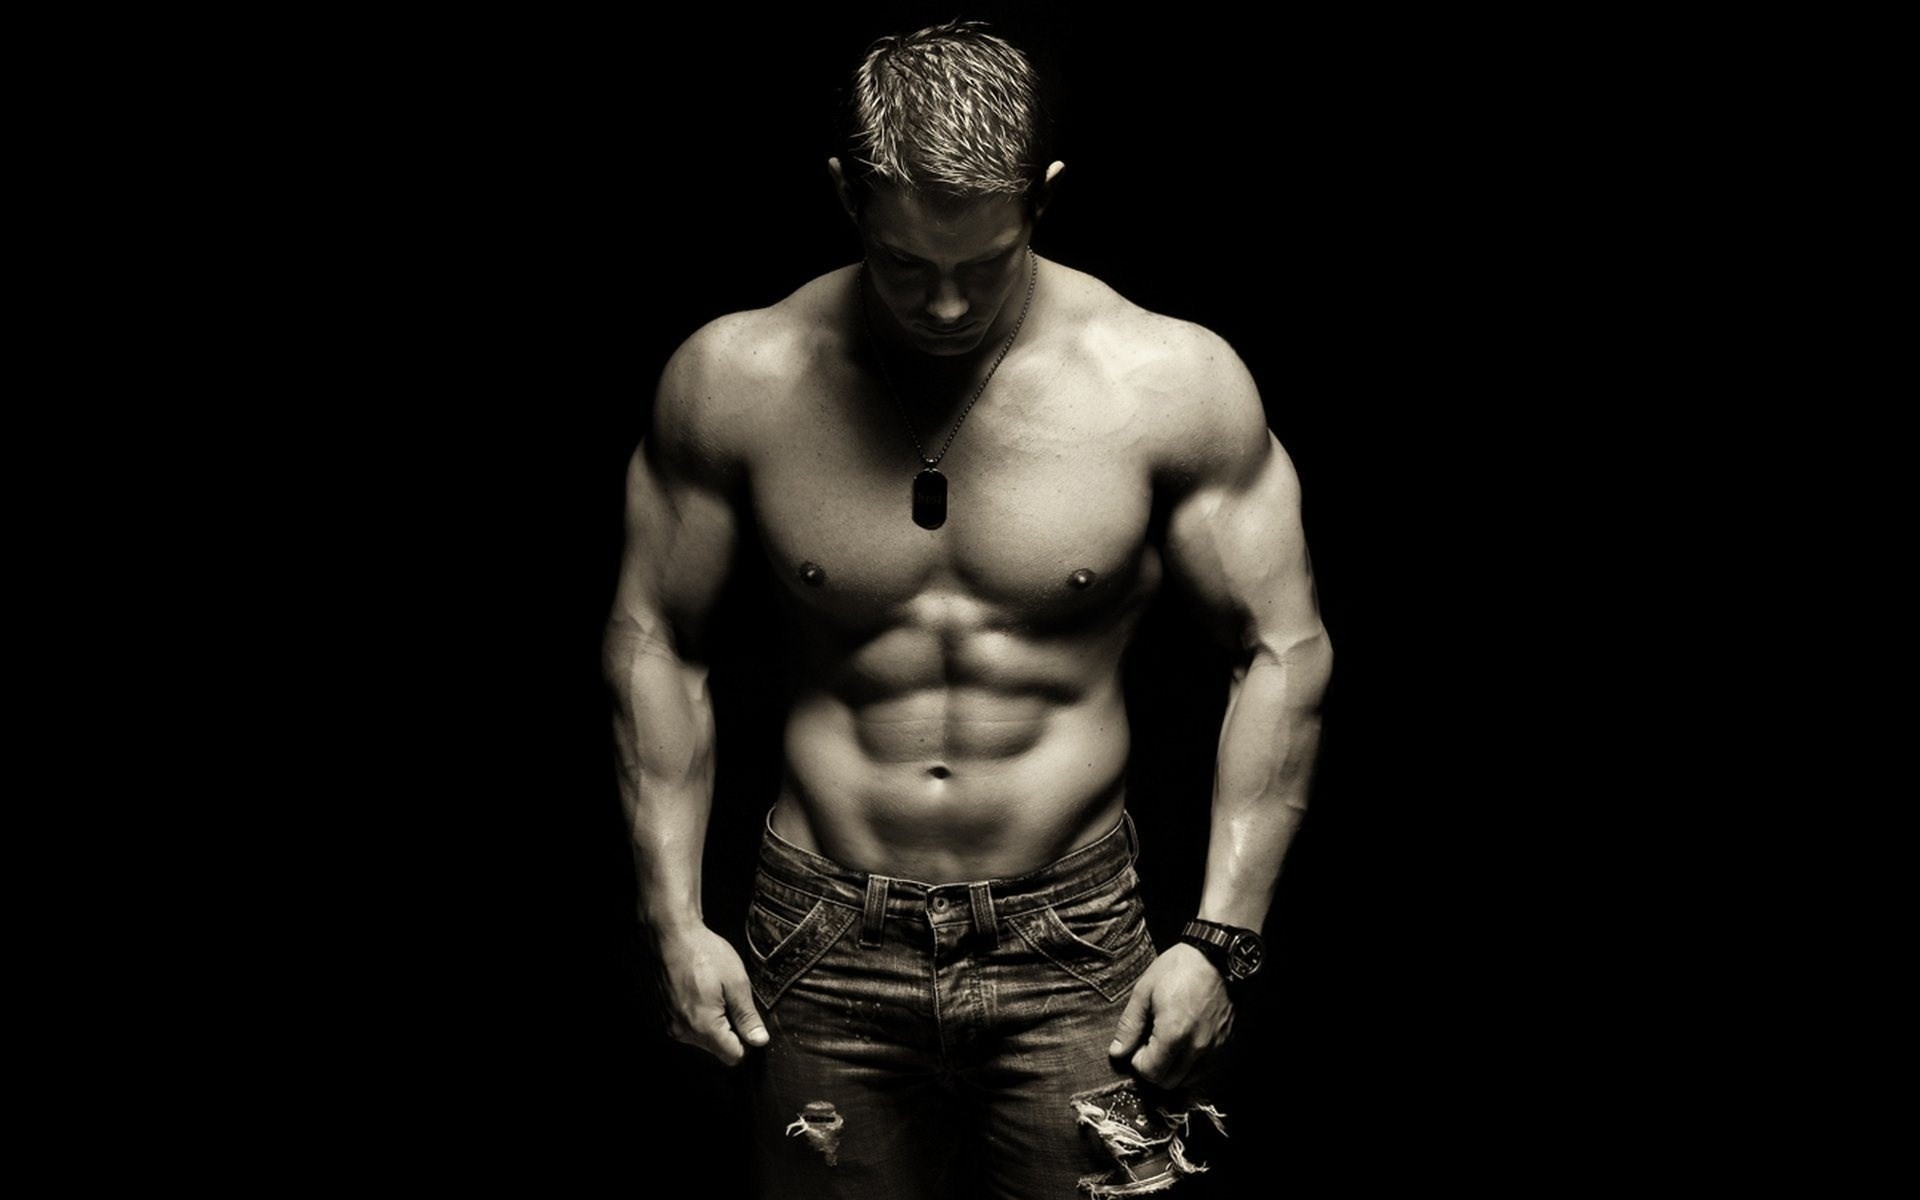 Lean Body Wallpapers | Bodybuilding wallpapers download · Weight Lifting …